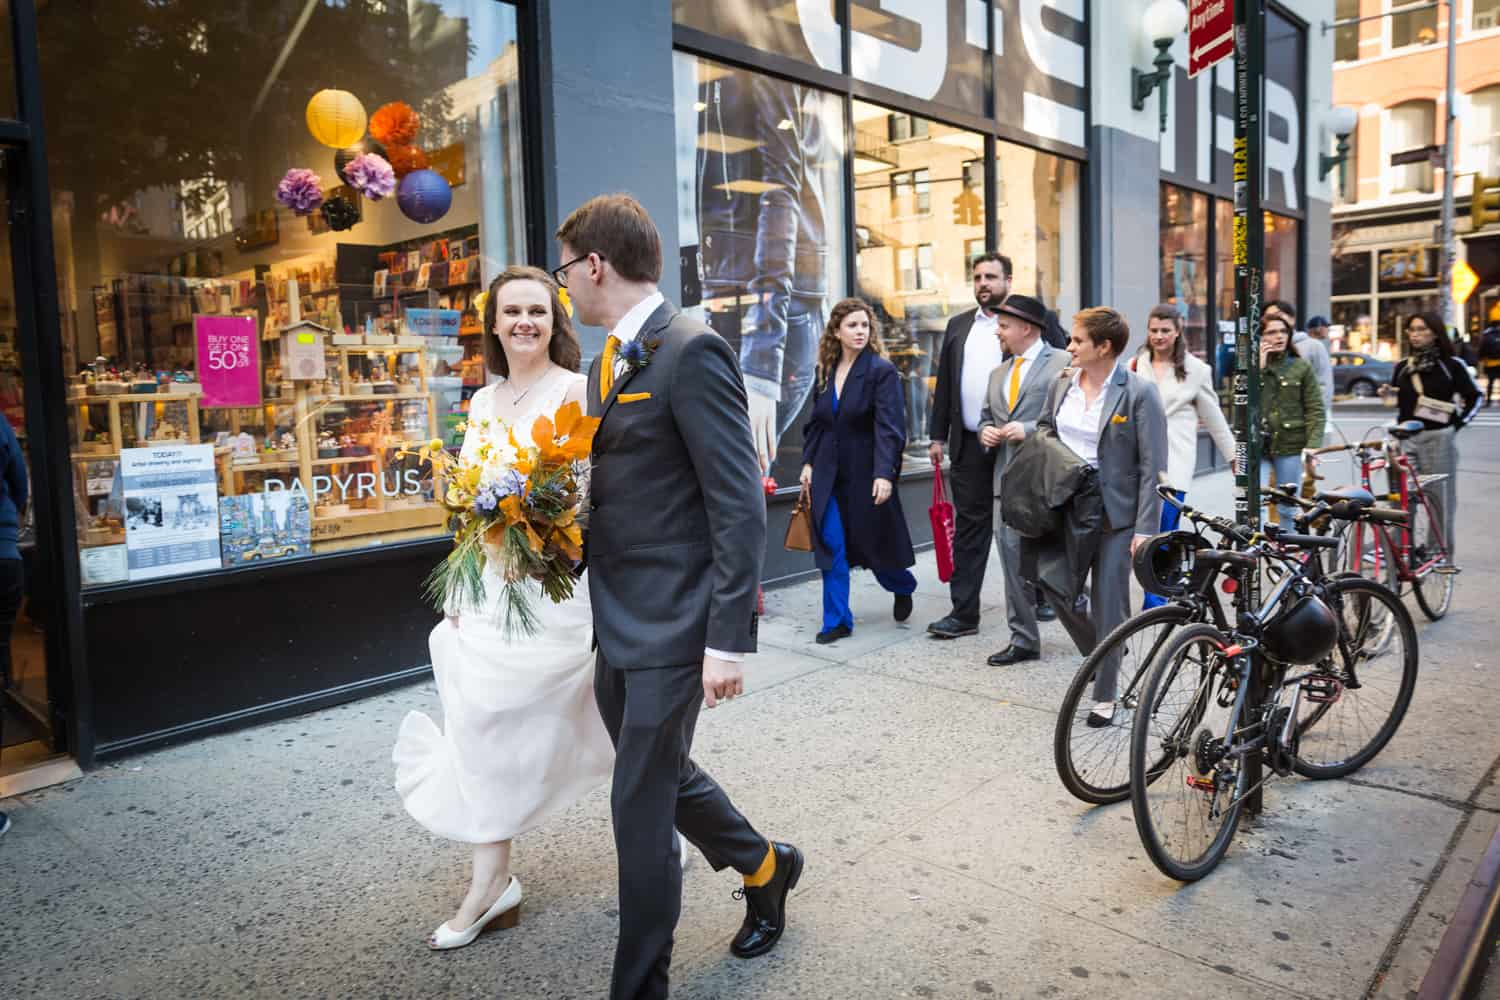 Bride and groom walking in front of bridal party on NYC sidewalk